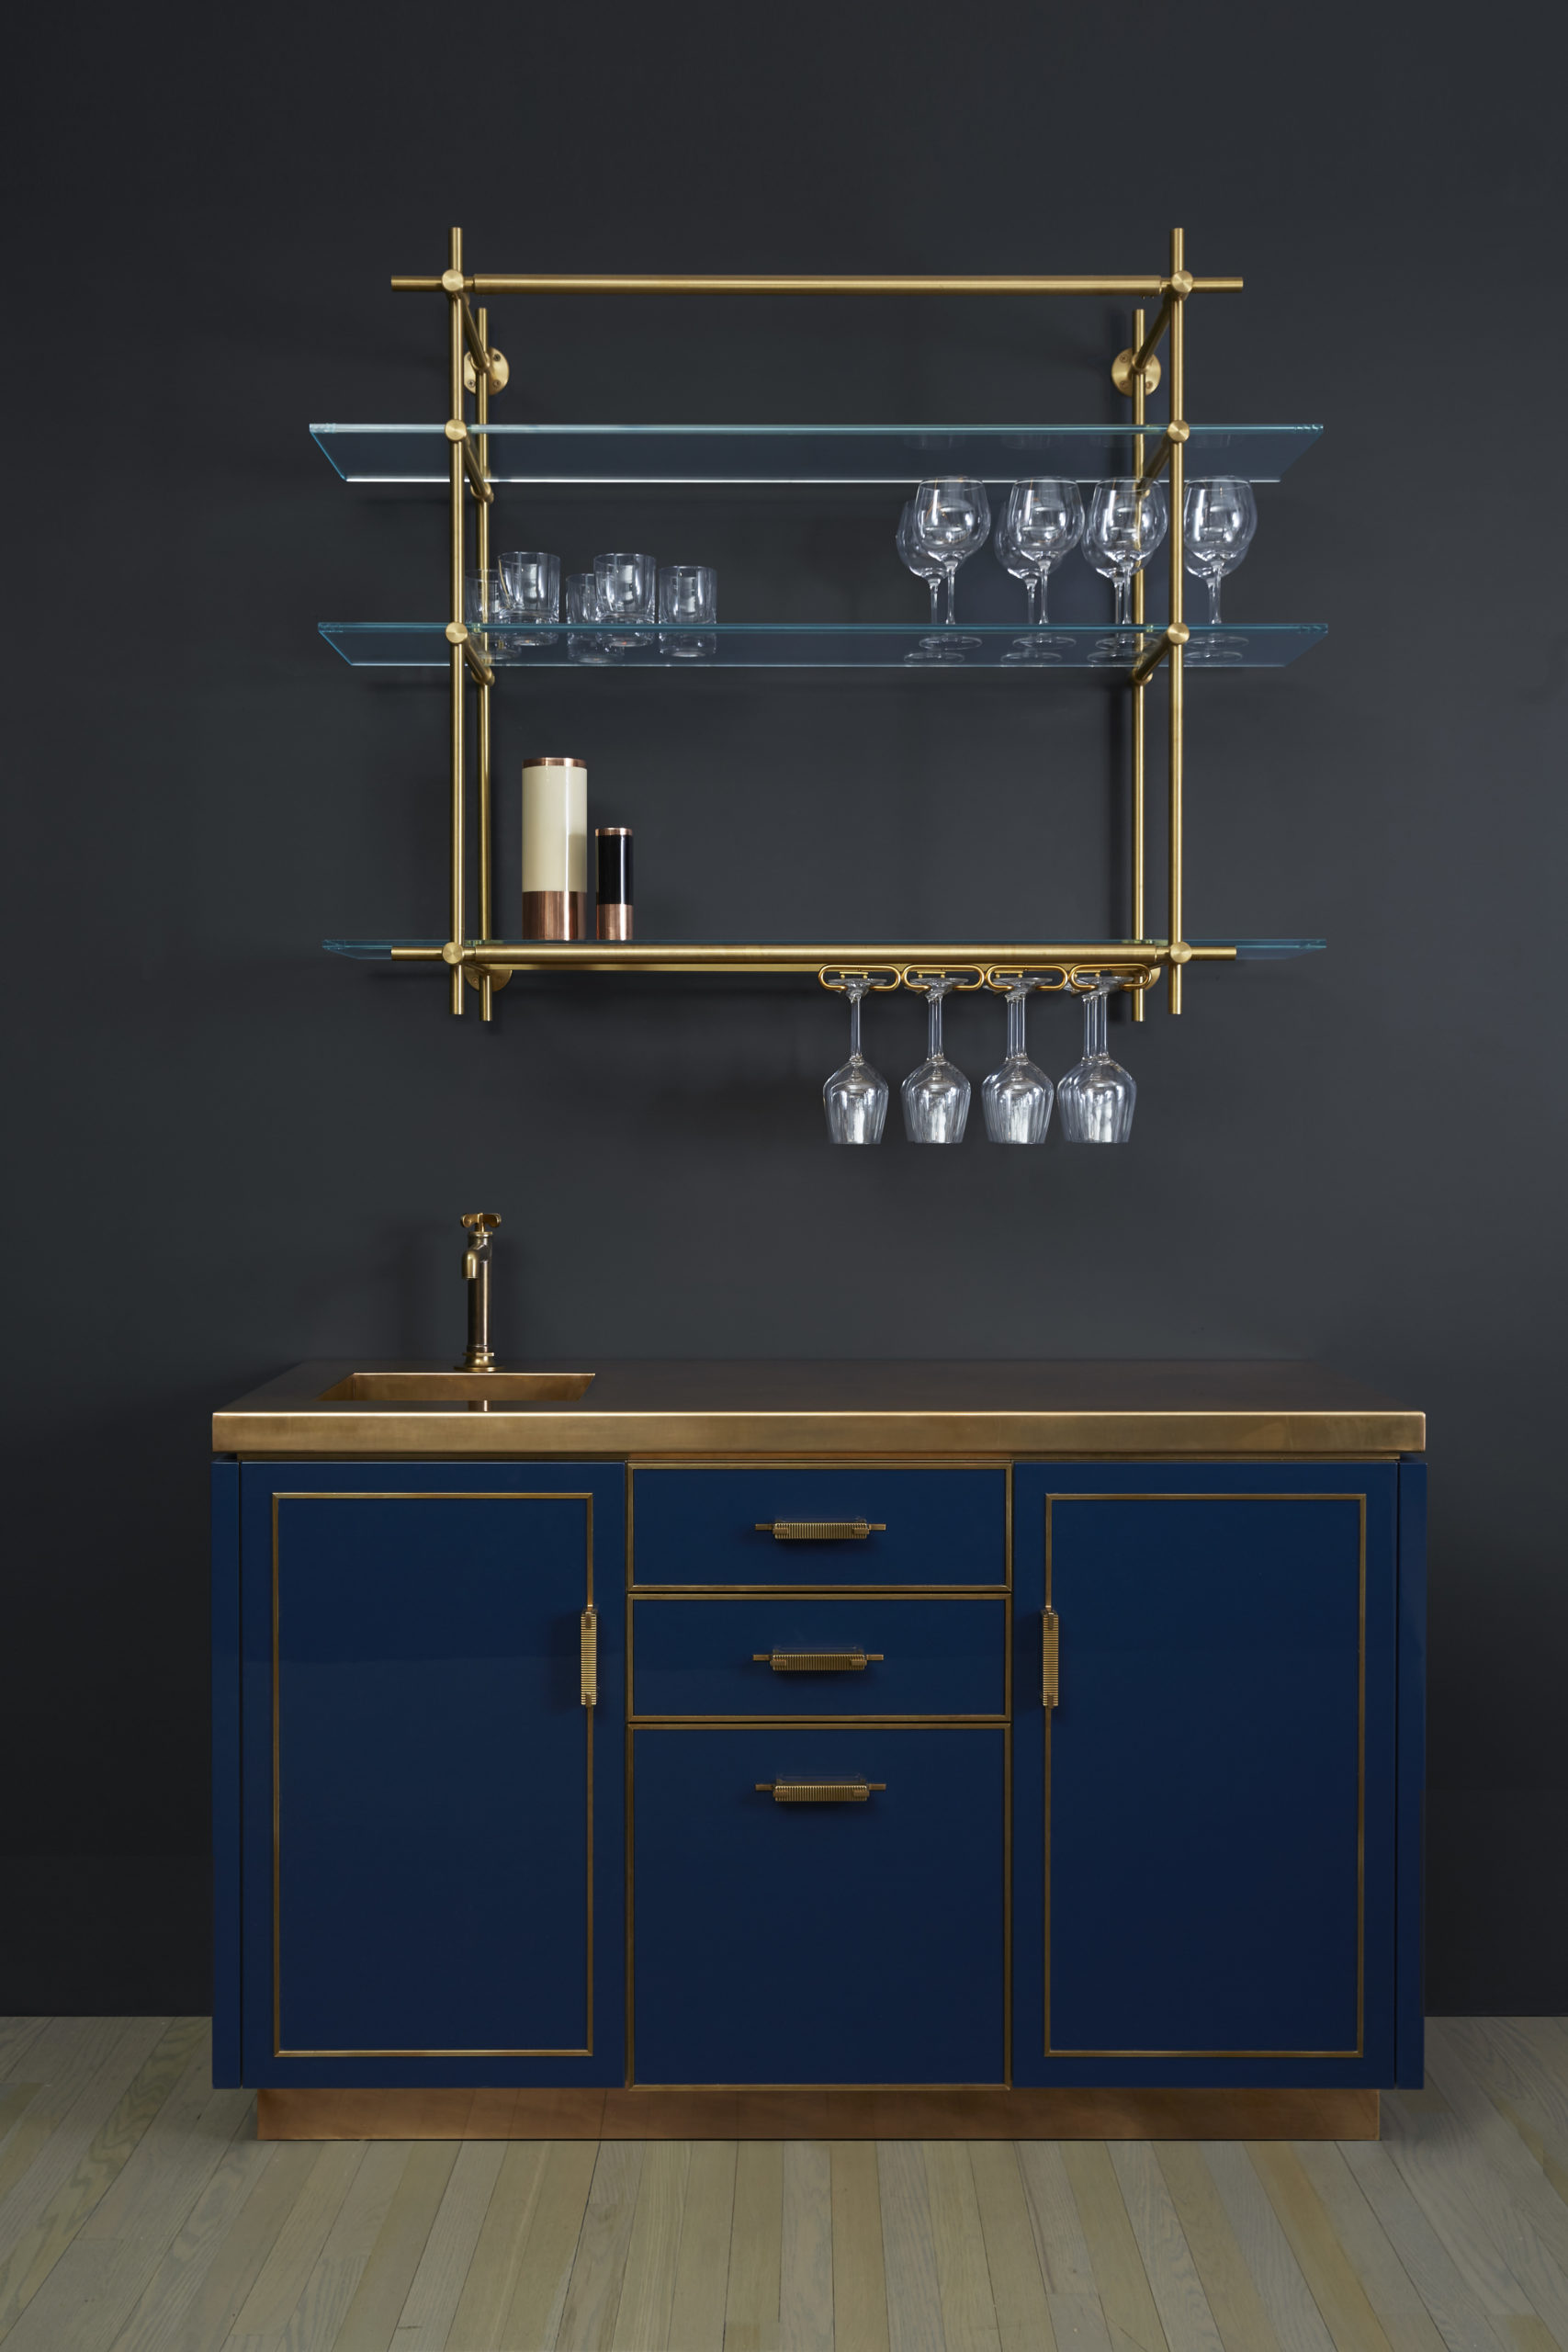 amuneal_products_WNWN_NYDC_2Lacquer-Bar-FRONT-Styled-amuneal_nycshowroom_2019_0330_proof-scaled-1